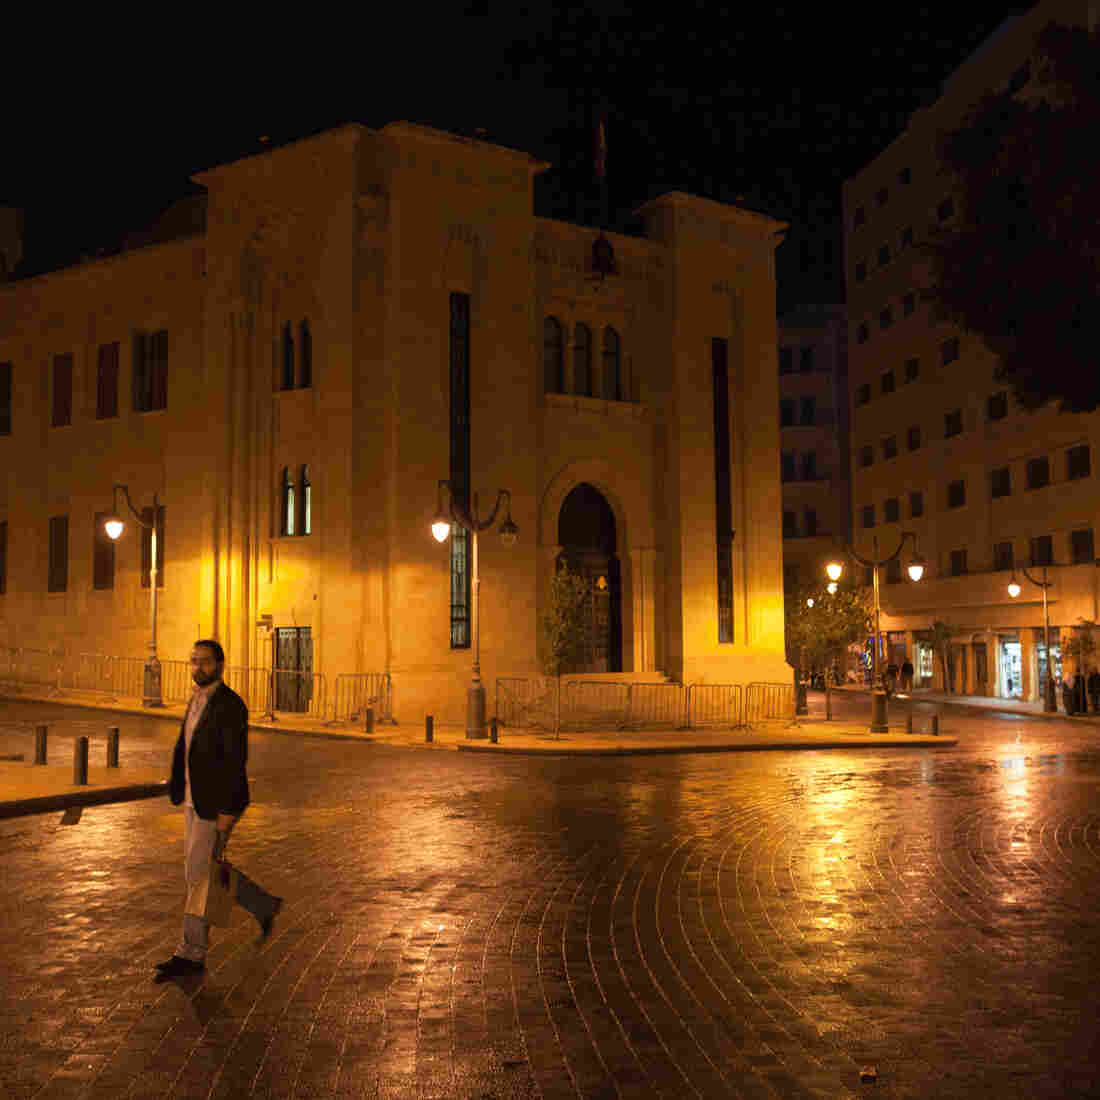 Lebanon's parliament sits in Beirut's rebuilt Nejmeh Square, near the center of the city. Unlike many of Beirut's neighborhoods, the square is often mostly empty.